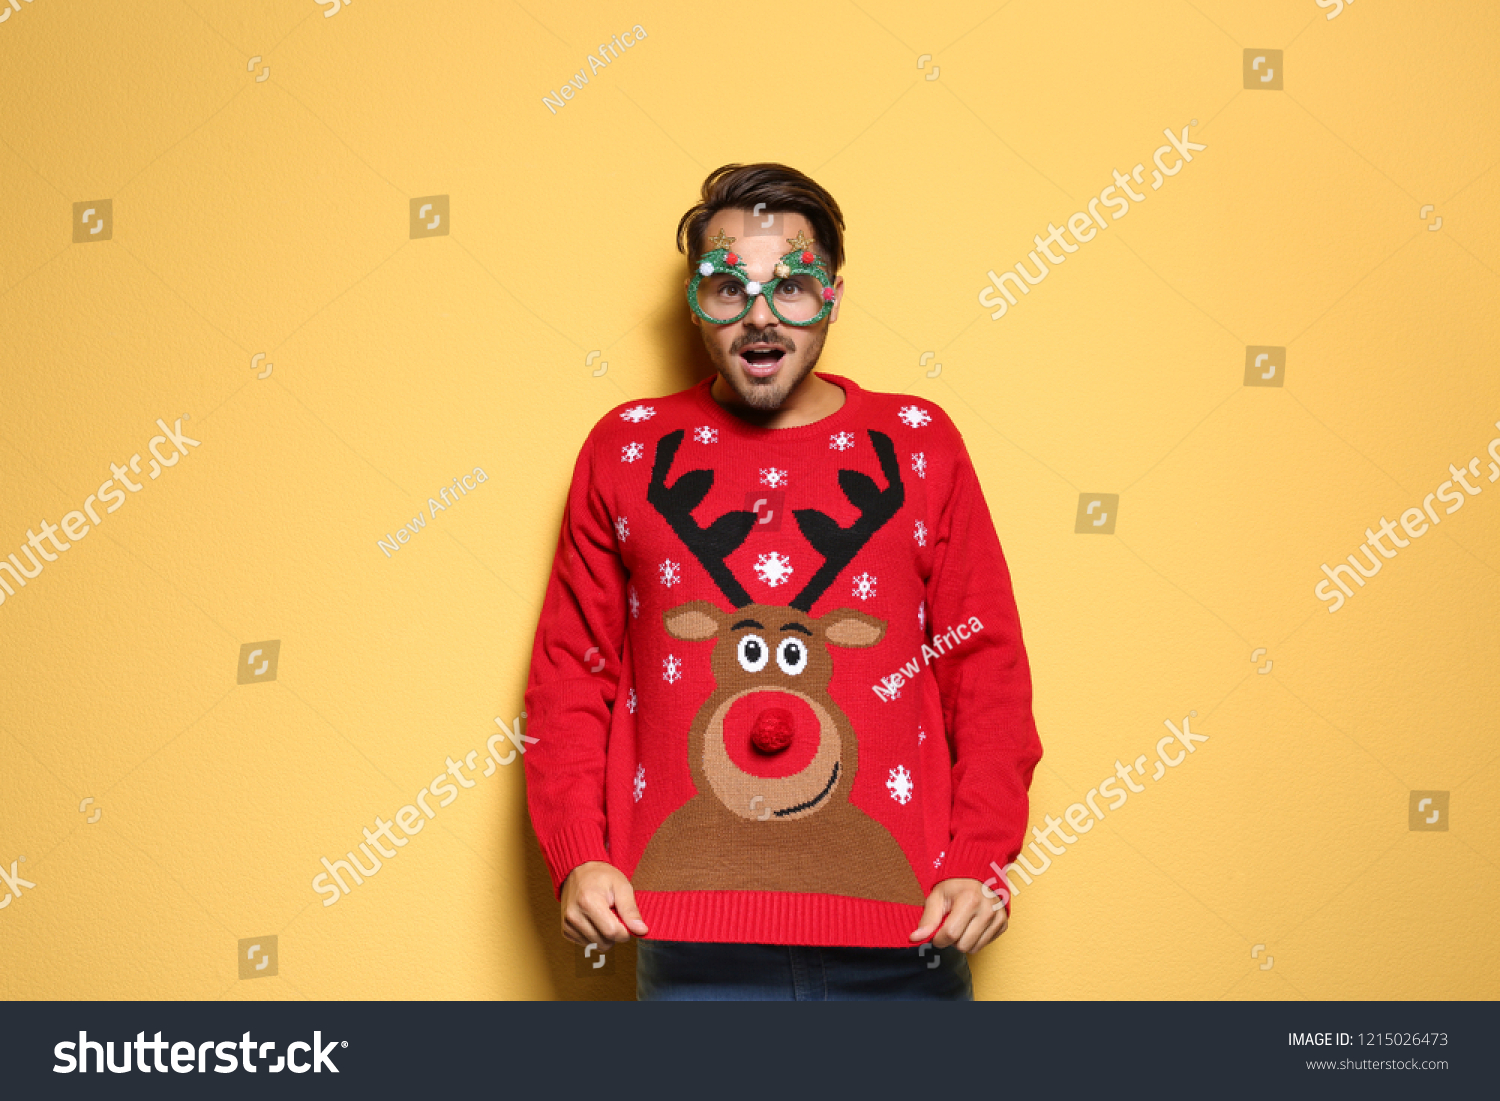 Young man in Christmas sweater with party glasses on color background #1215026473